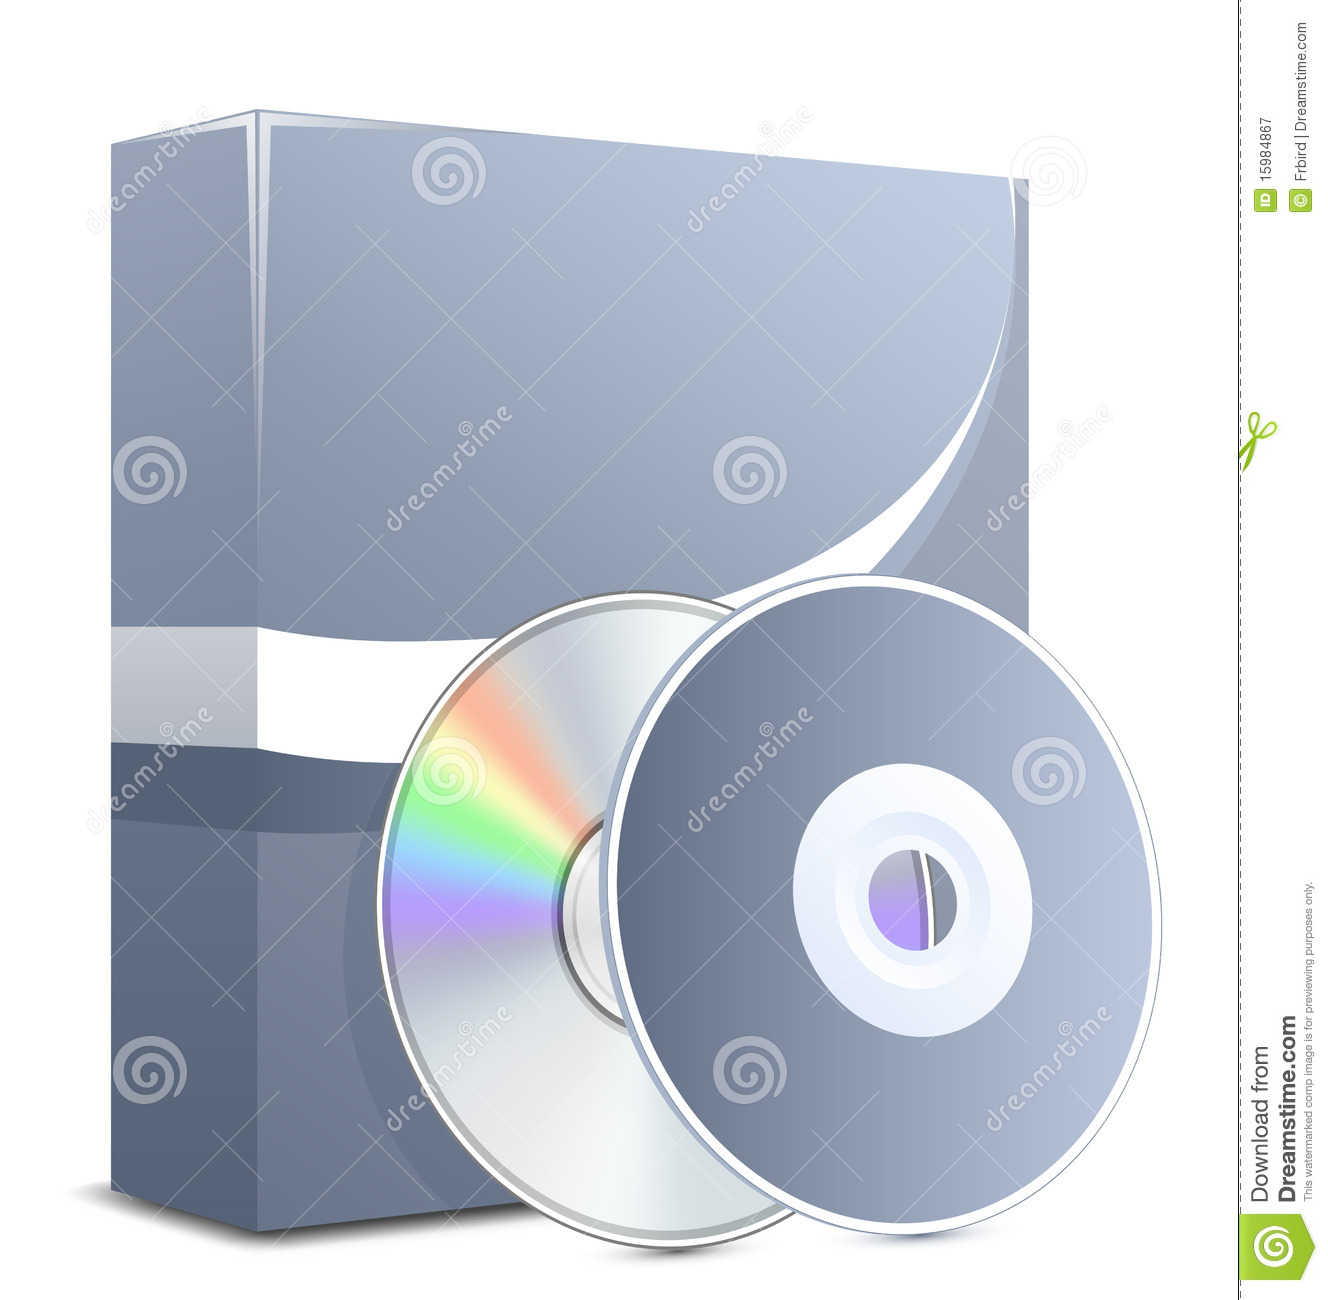 Software product in box